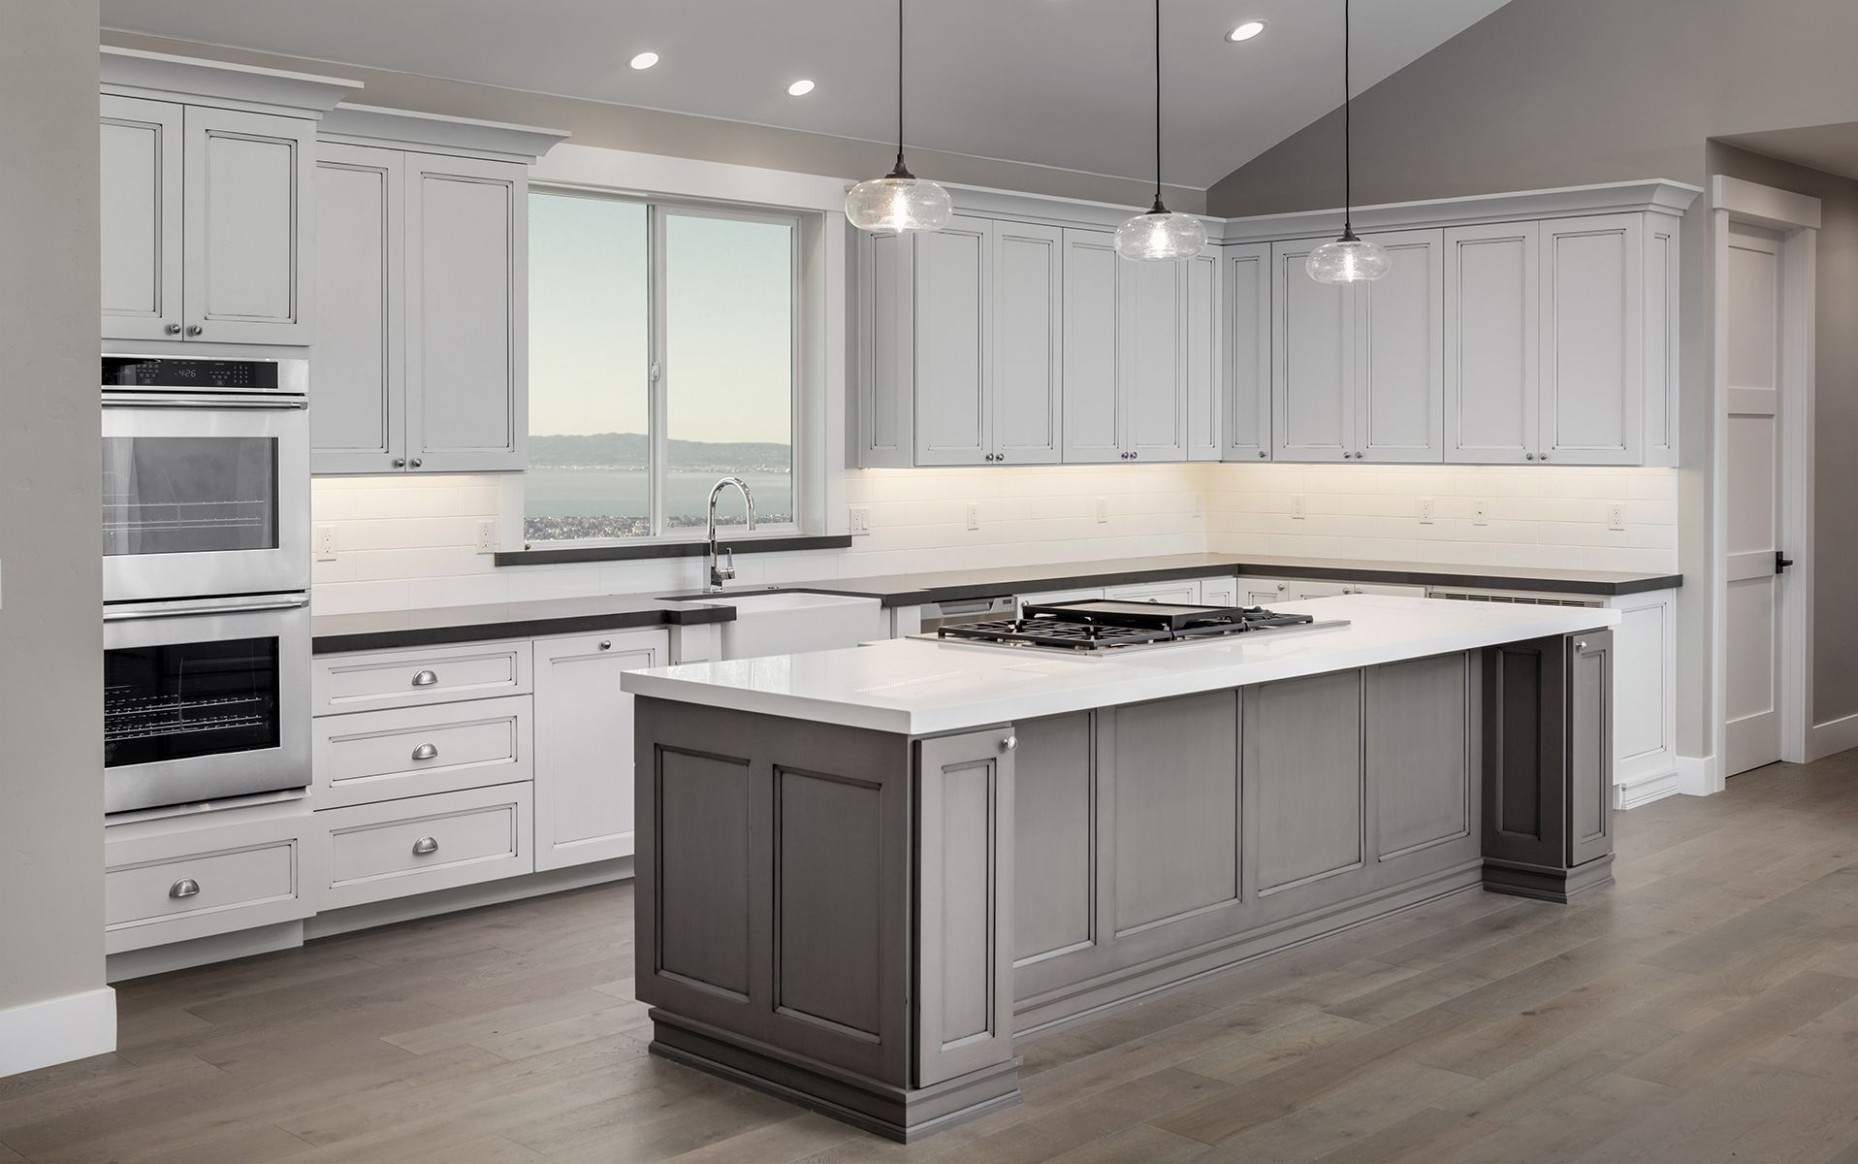 12 Tips for Remodeling Your Kitchen Cabinets in 12  L shape  - New Yorker Kitchen Cabinets